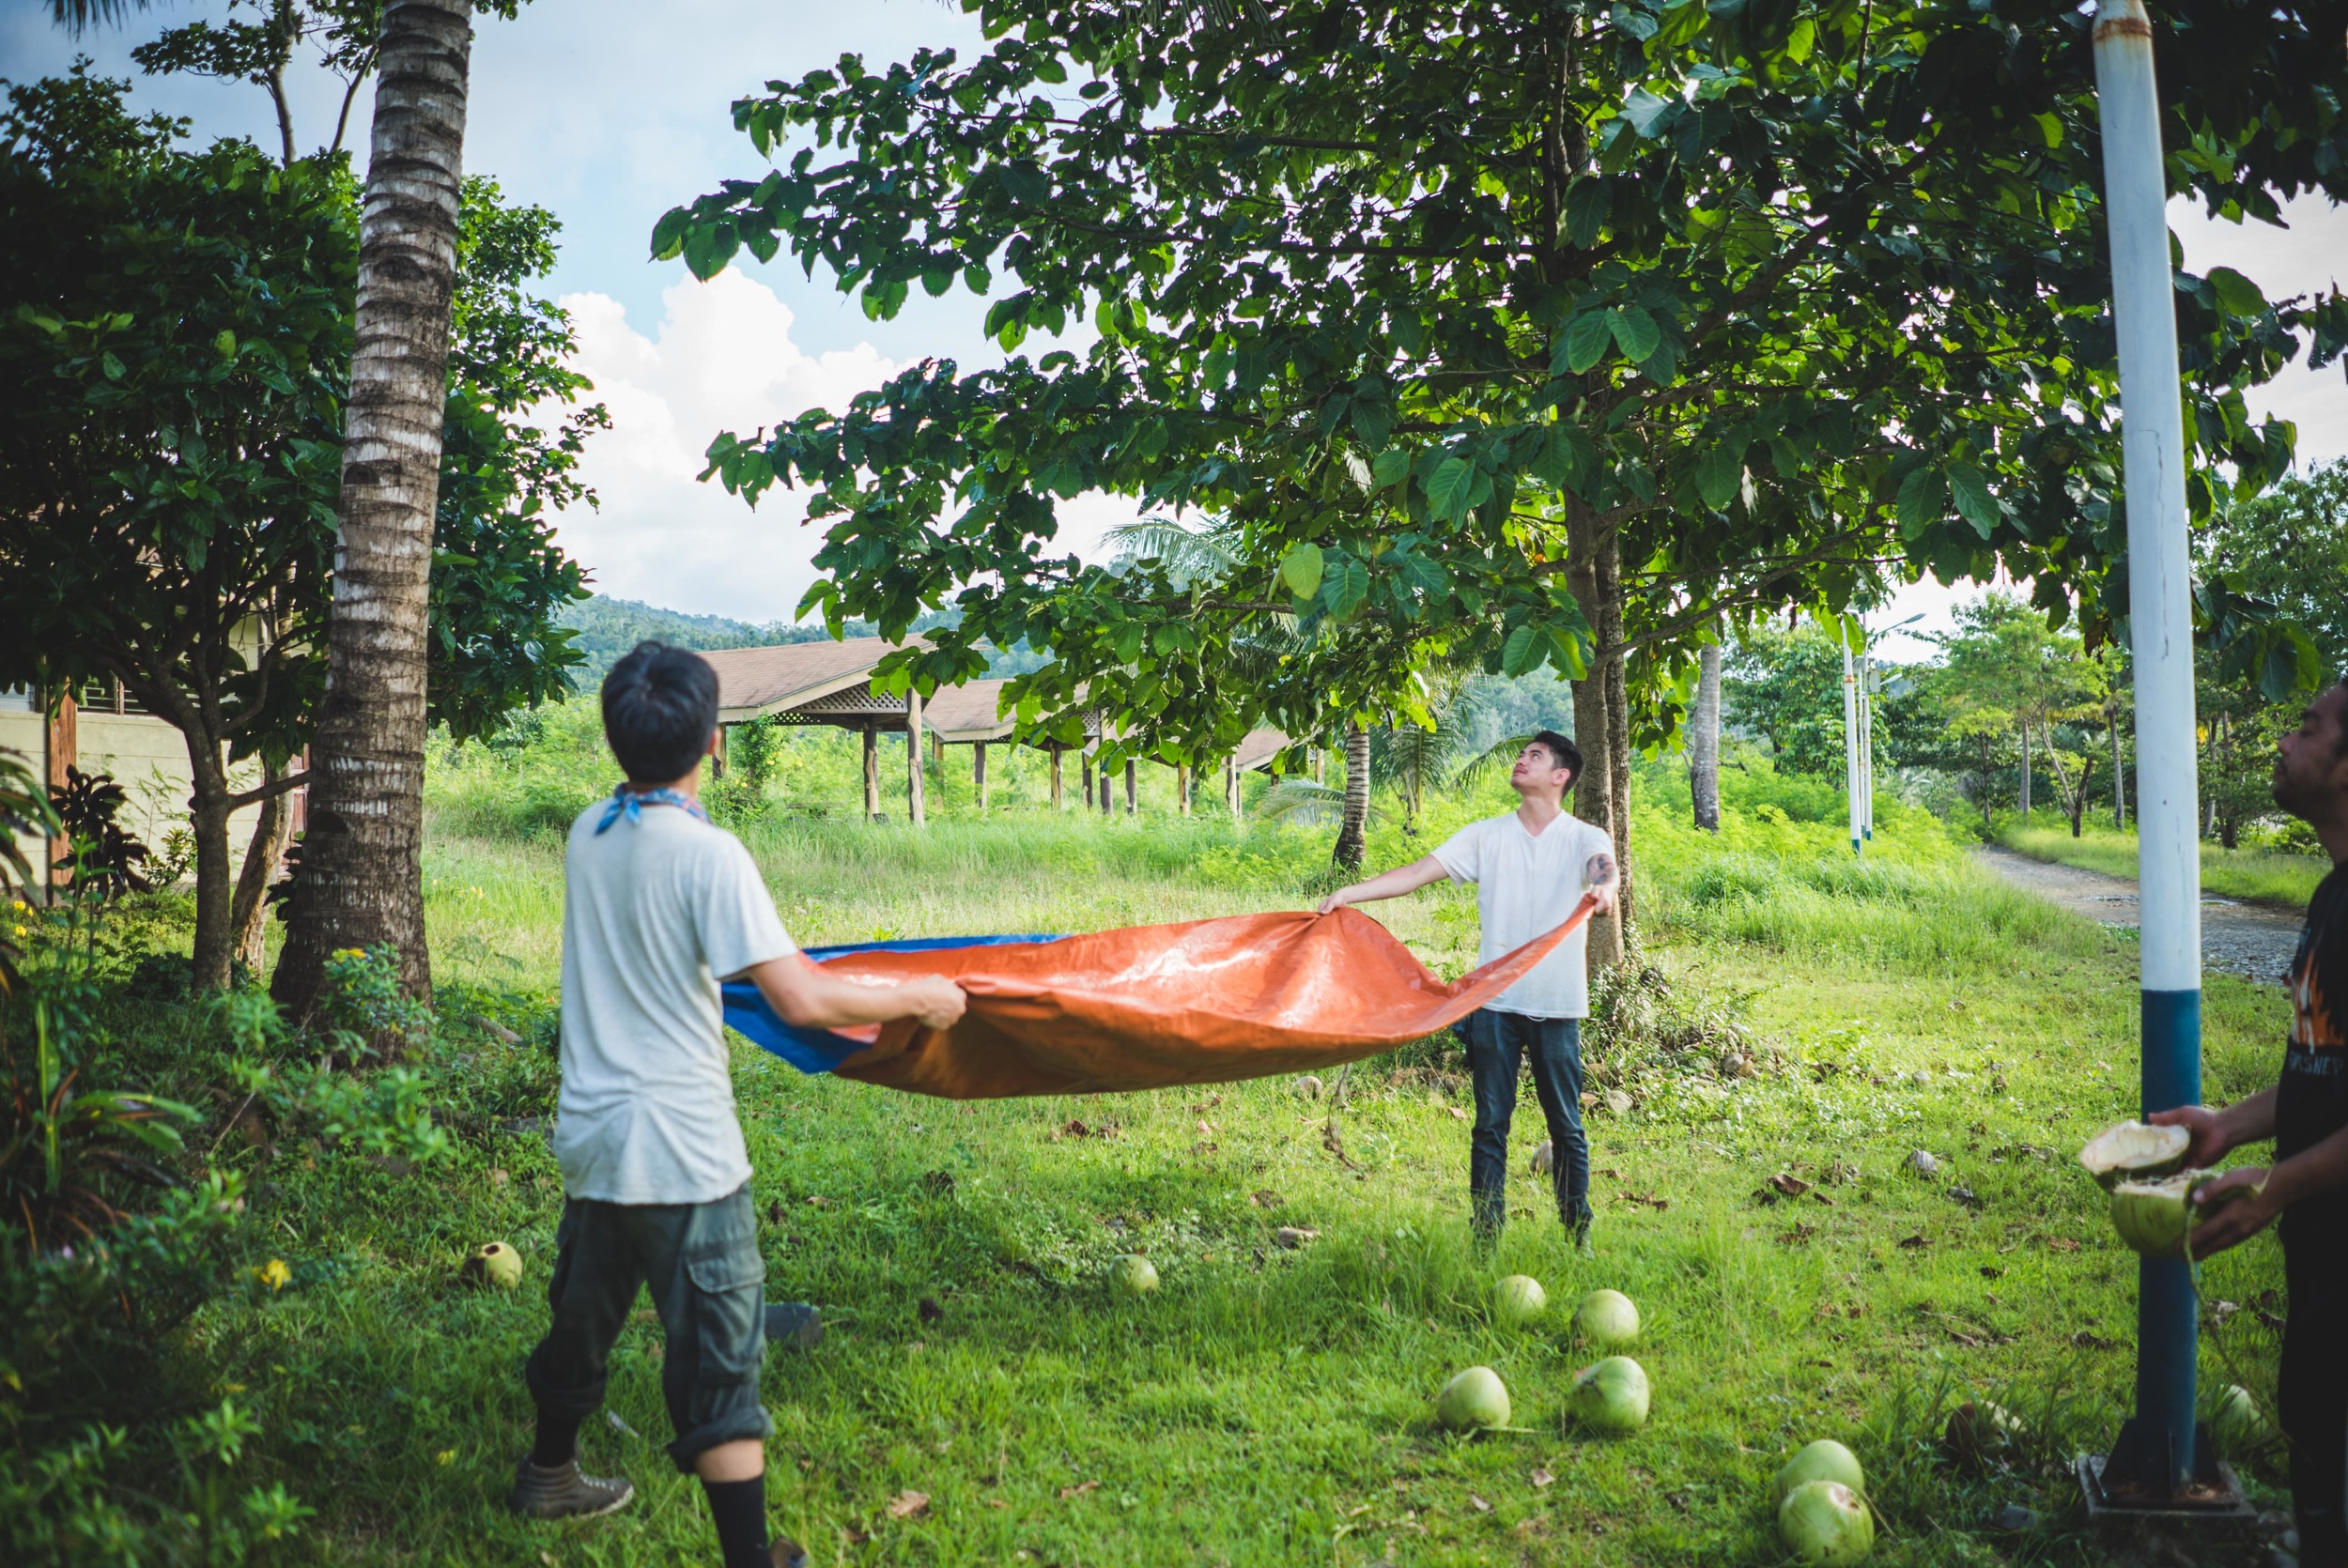 We used a tarp to catch coconuts while Ramon effortlessly climbed the tree.